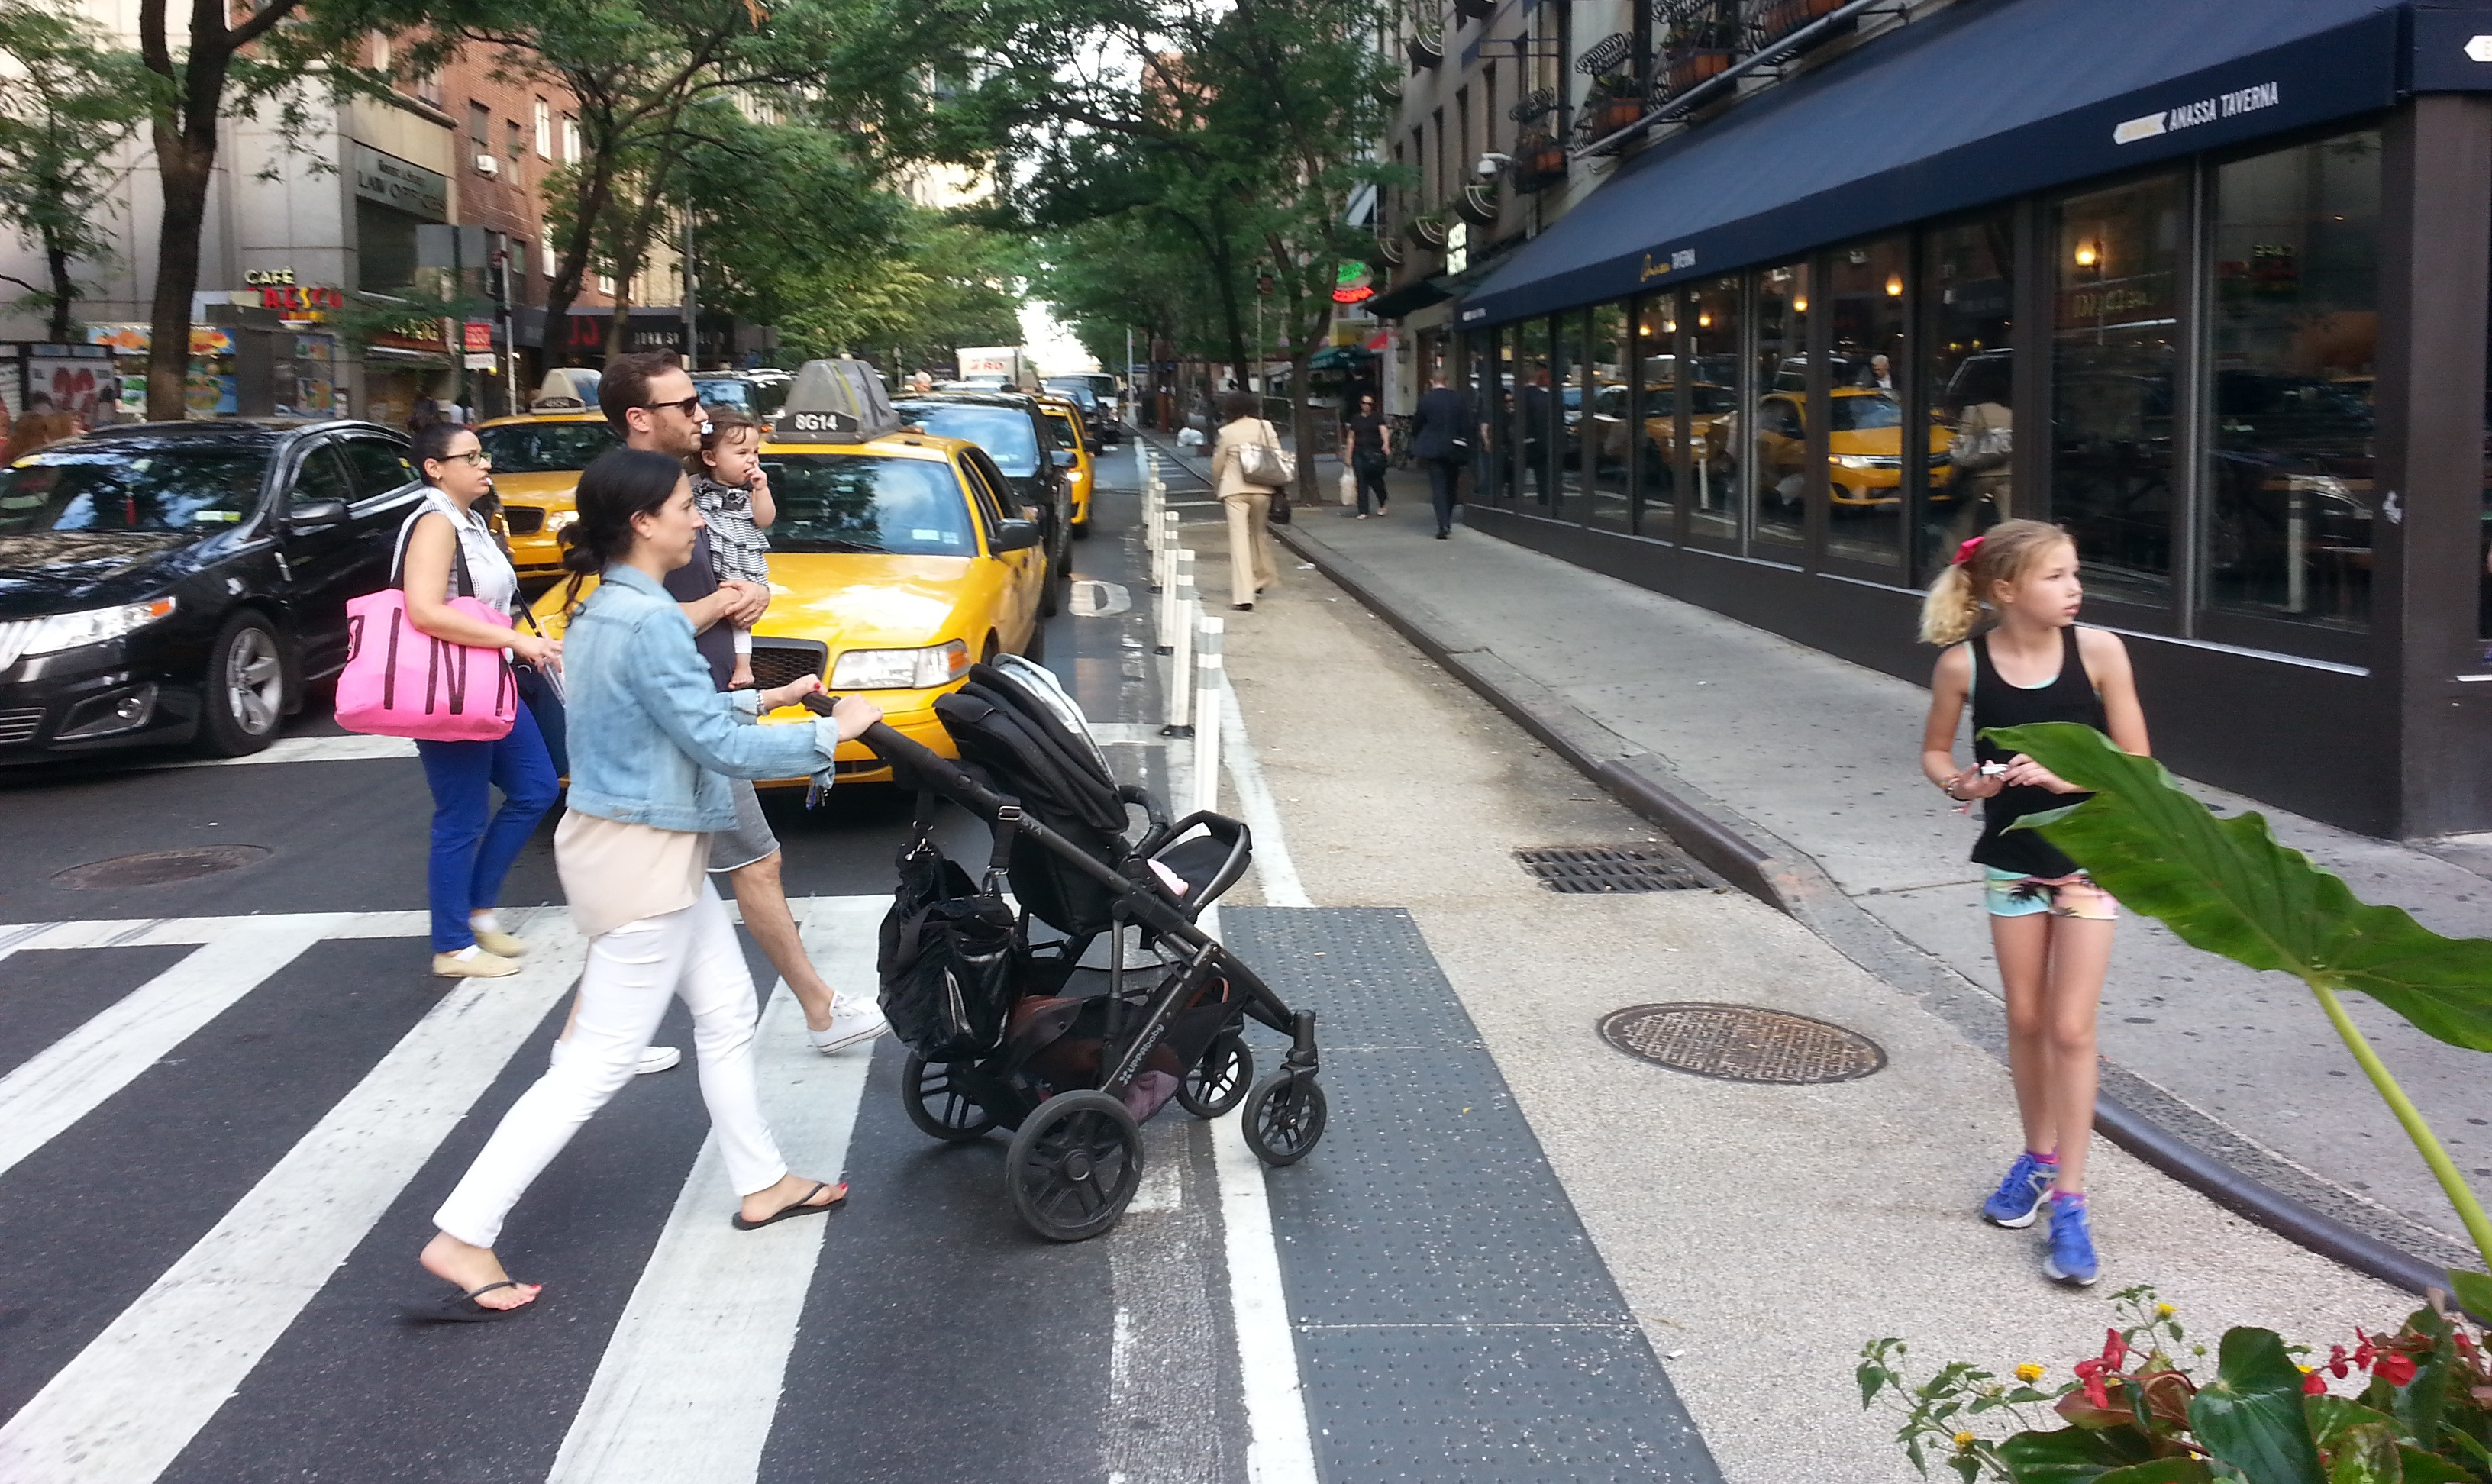 The crowded intersection of 60th Street and Third Avenue now has a bit more space for pedestrians. Photo: Stephen Miller